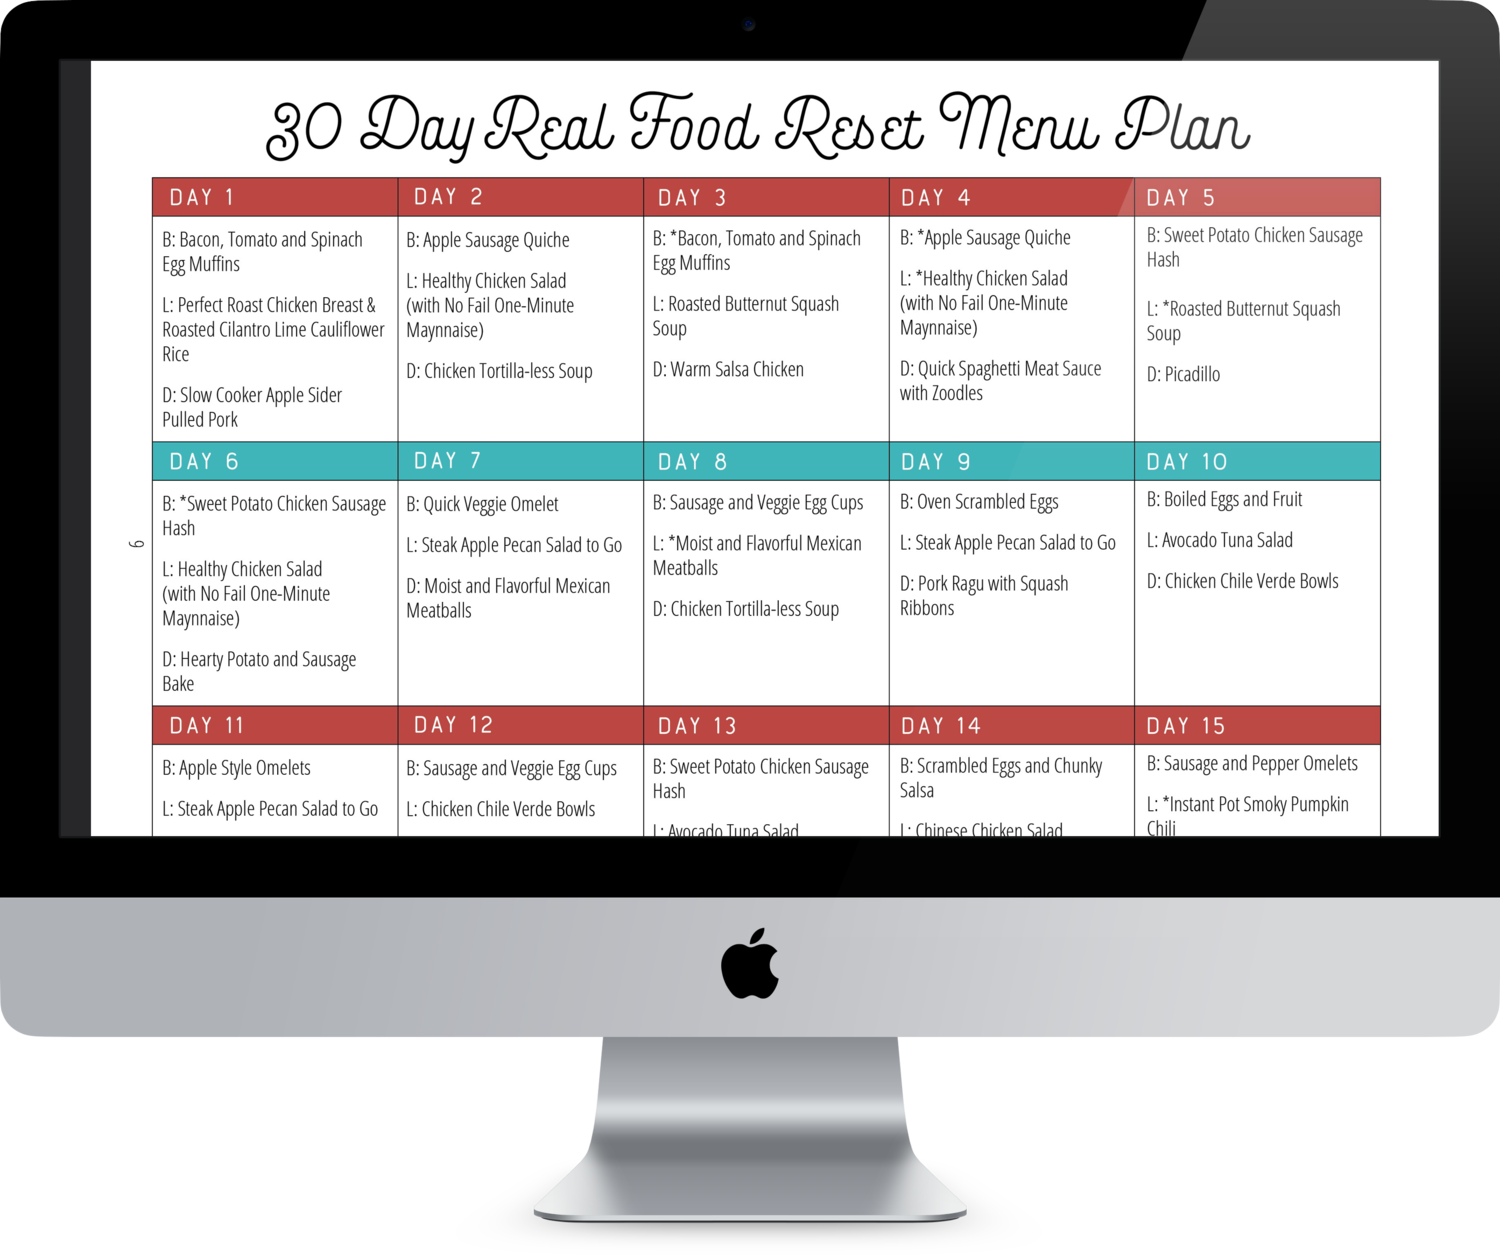 30 Day Real Food Reset